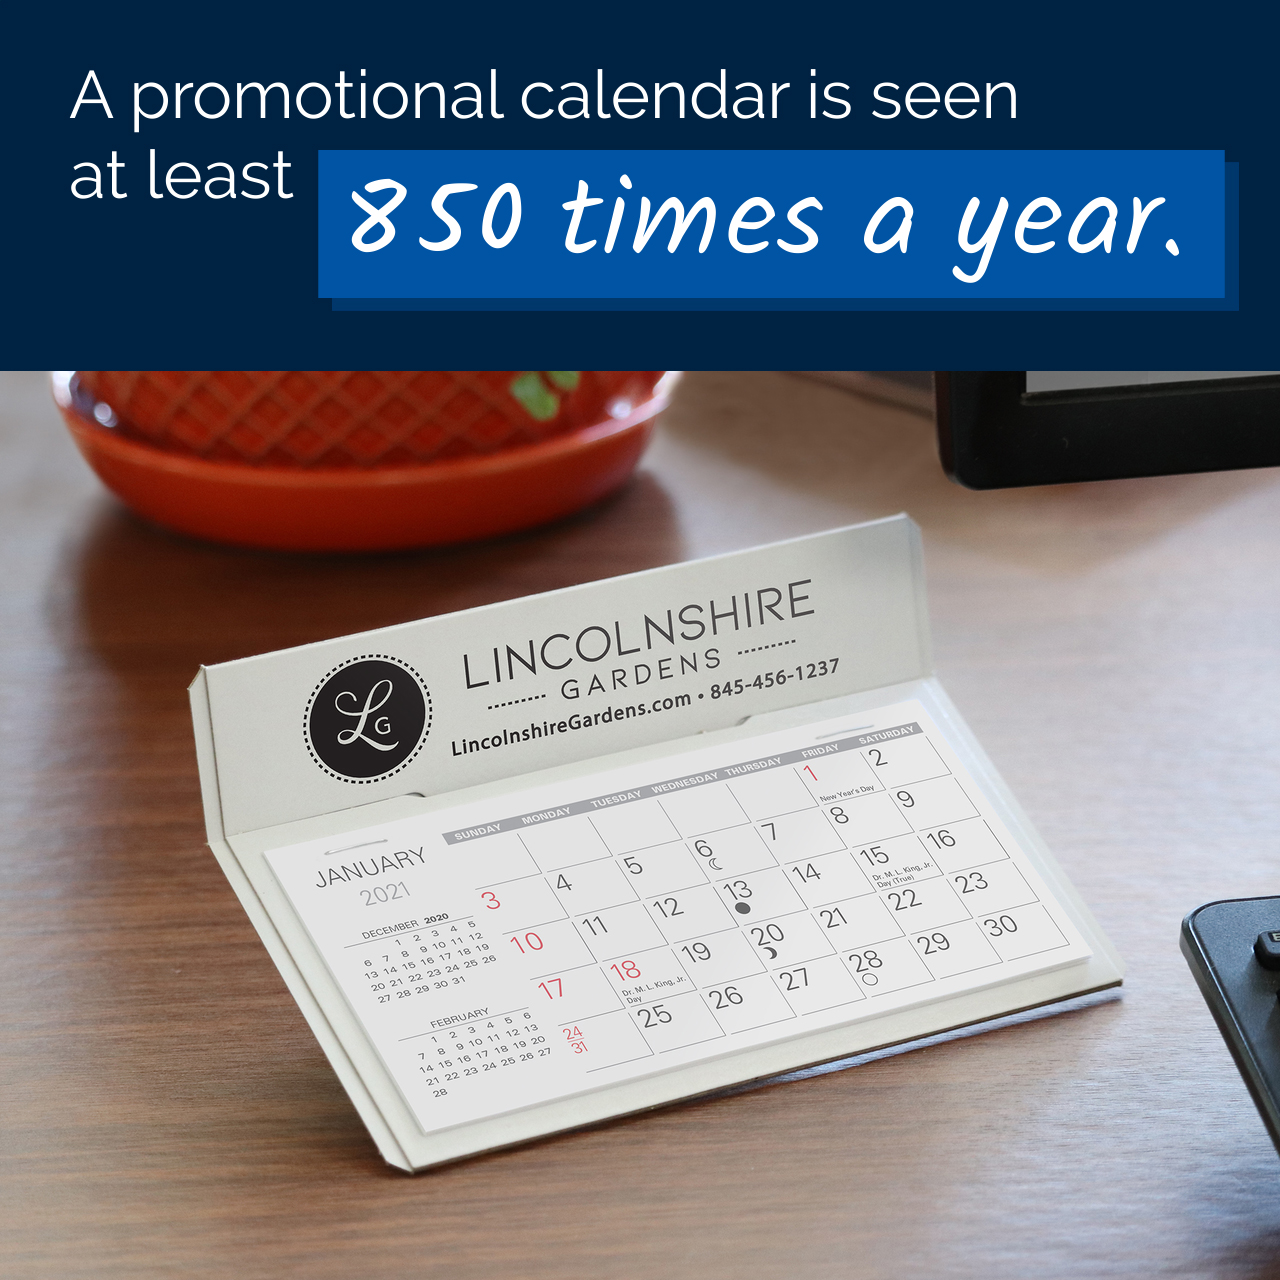 Promotional Calendars Impressions pre Year